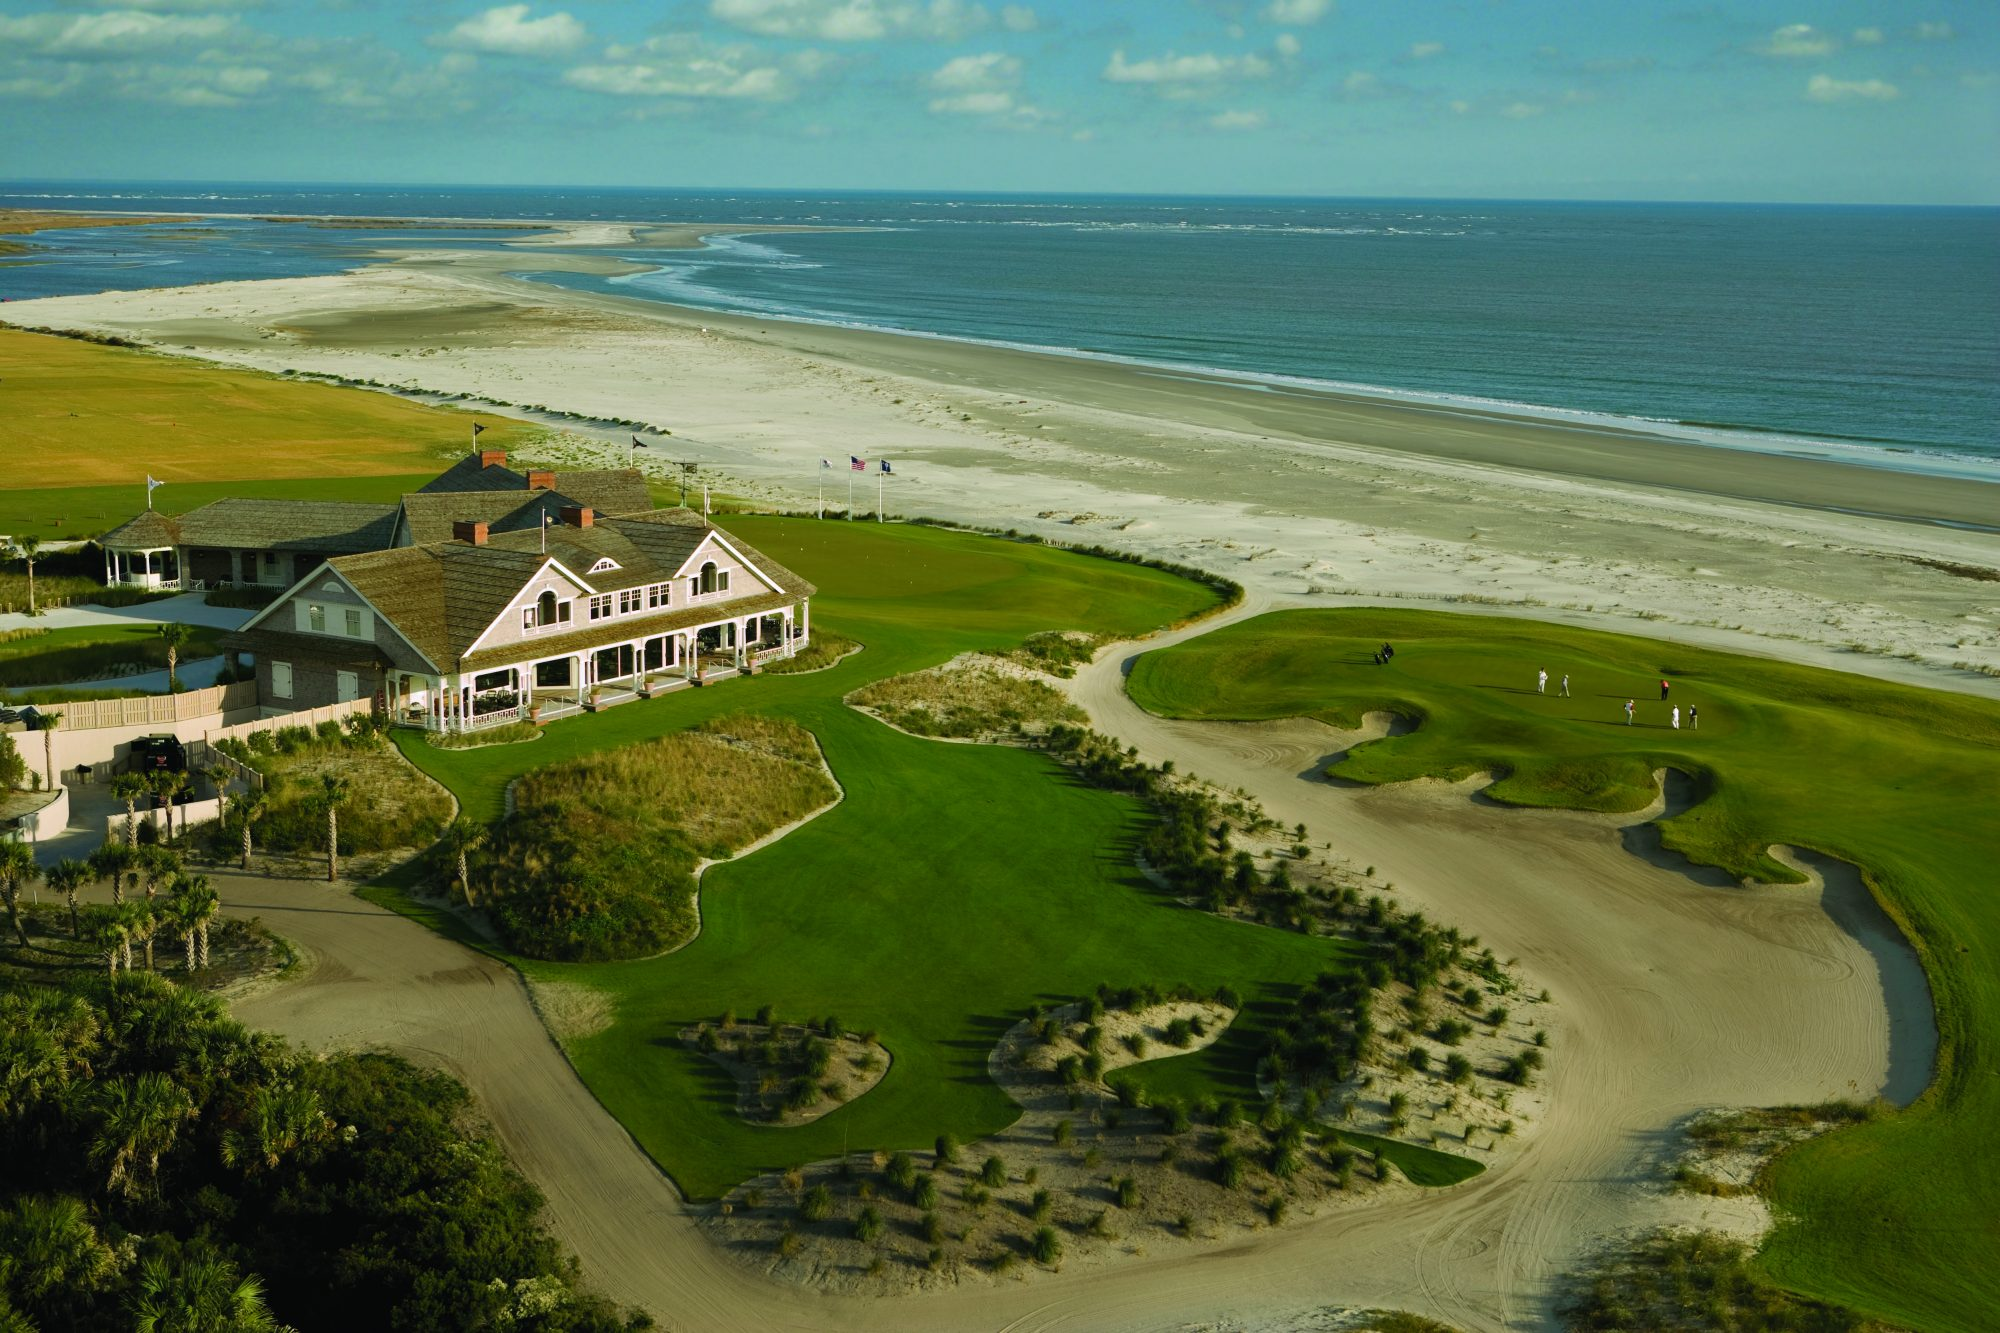 No. 19 The Sanctuary at Kiawah Island Golf Resort in Kiawah Island, South Carolina